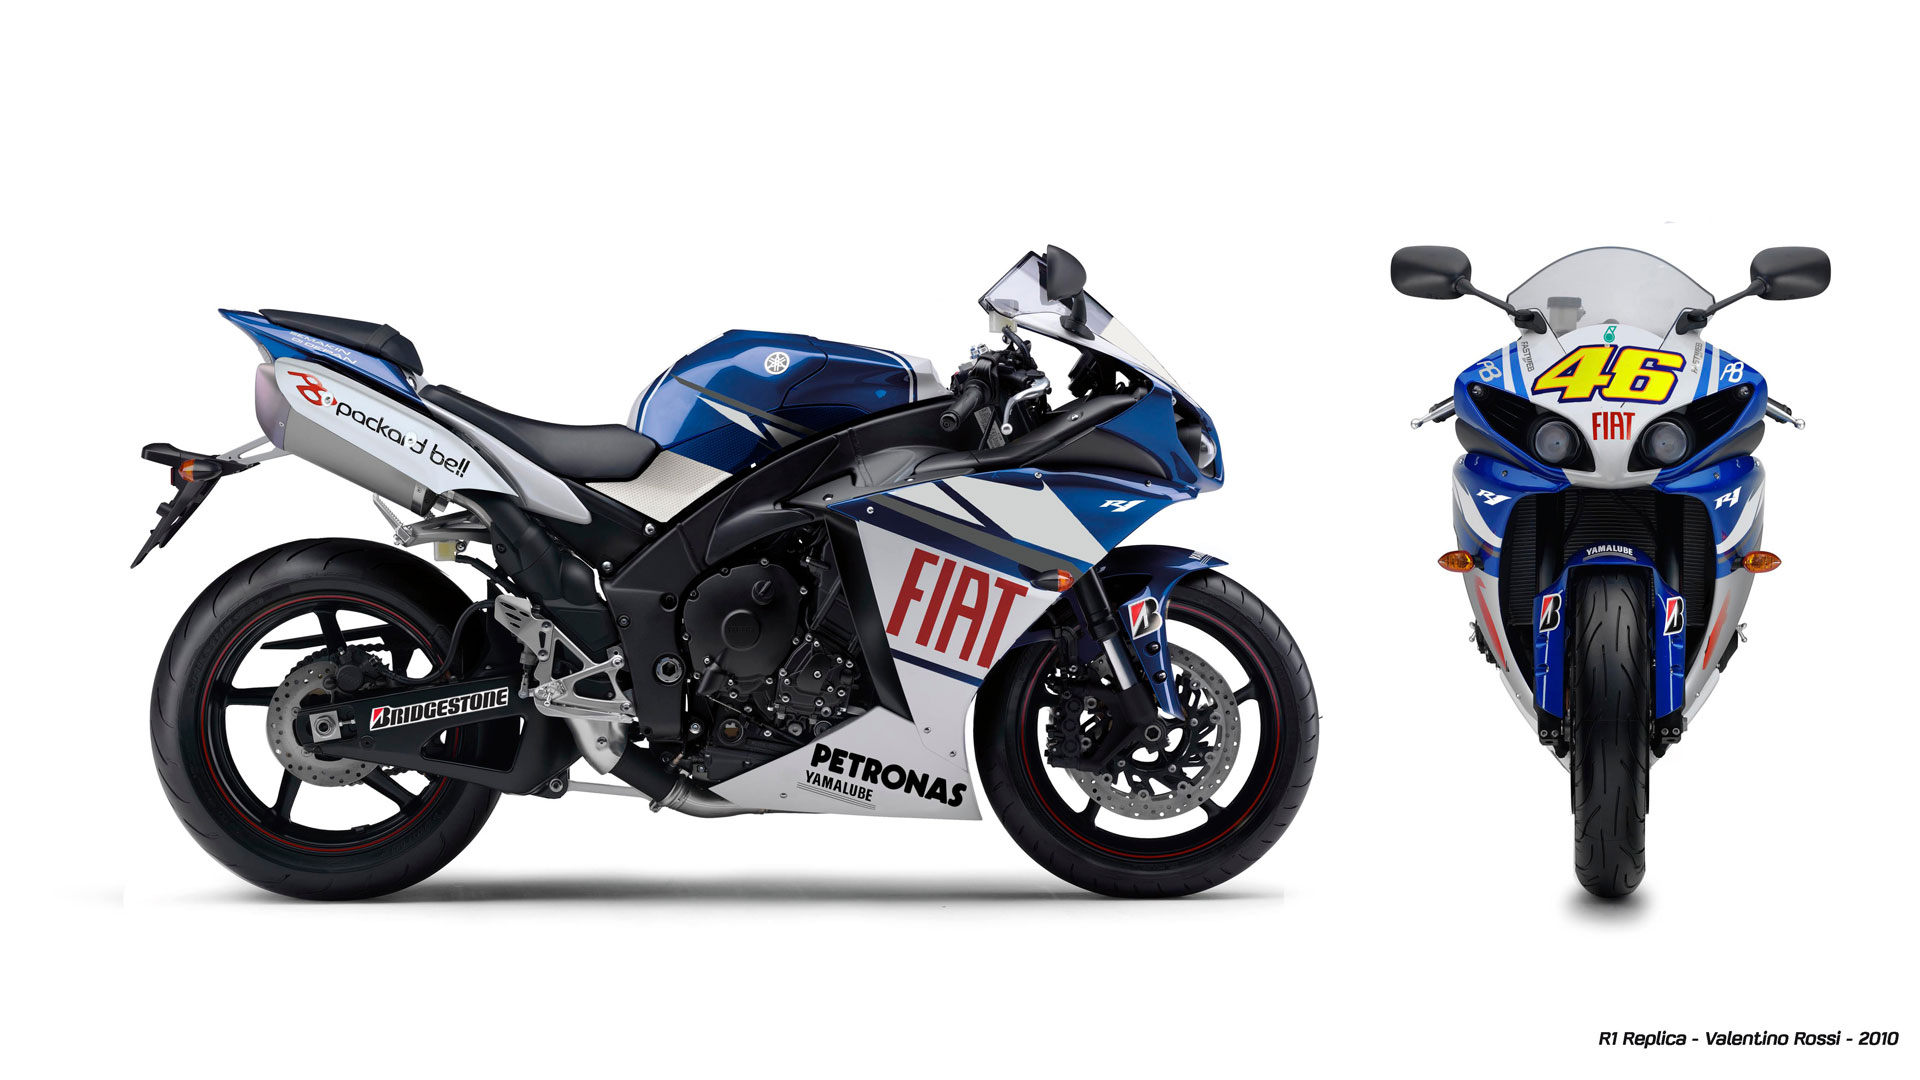 hight resolution of  has released just four different race replicas of their four motogp riders so the valentino rossi and jorge lorenzo replicas feature the fiat yamaha